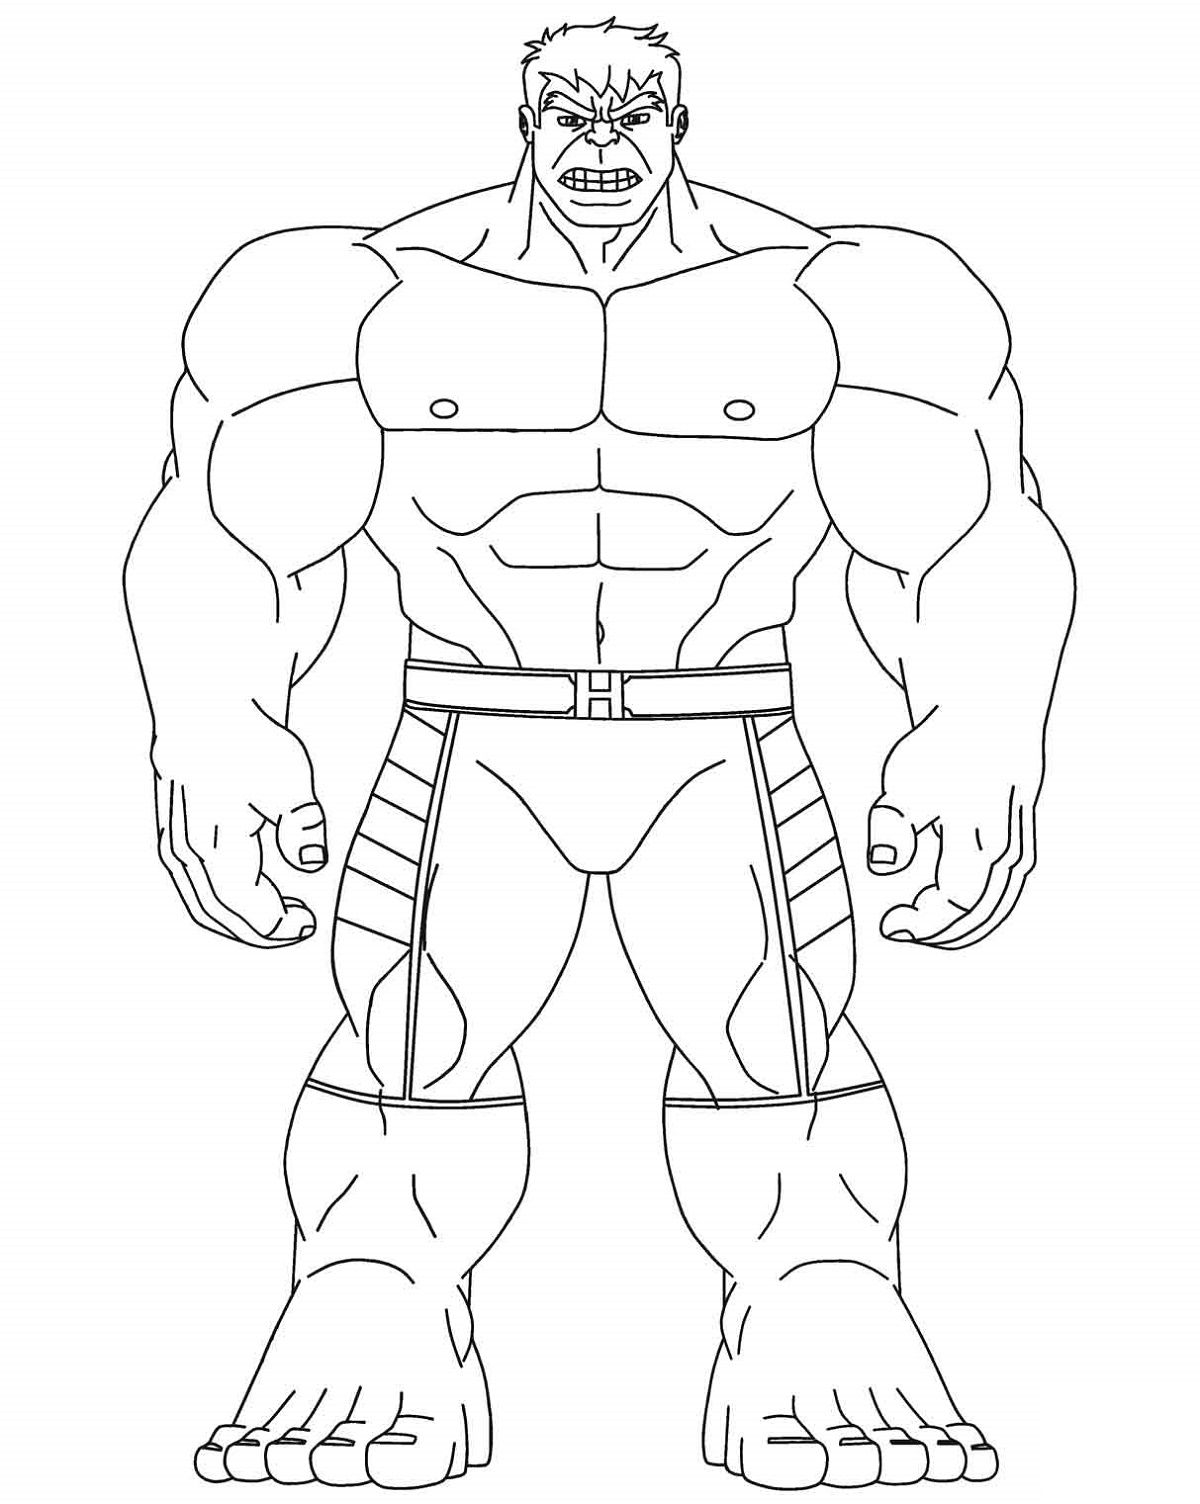 Avengers The Hulk Coloring Page Free Printable Coloring Pages Avengers Coloring Marvel Coloring Superhero Coloring Pages